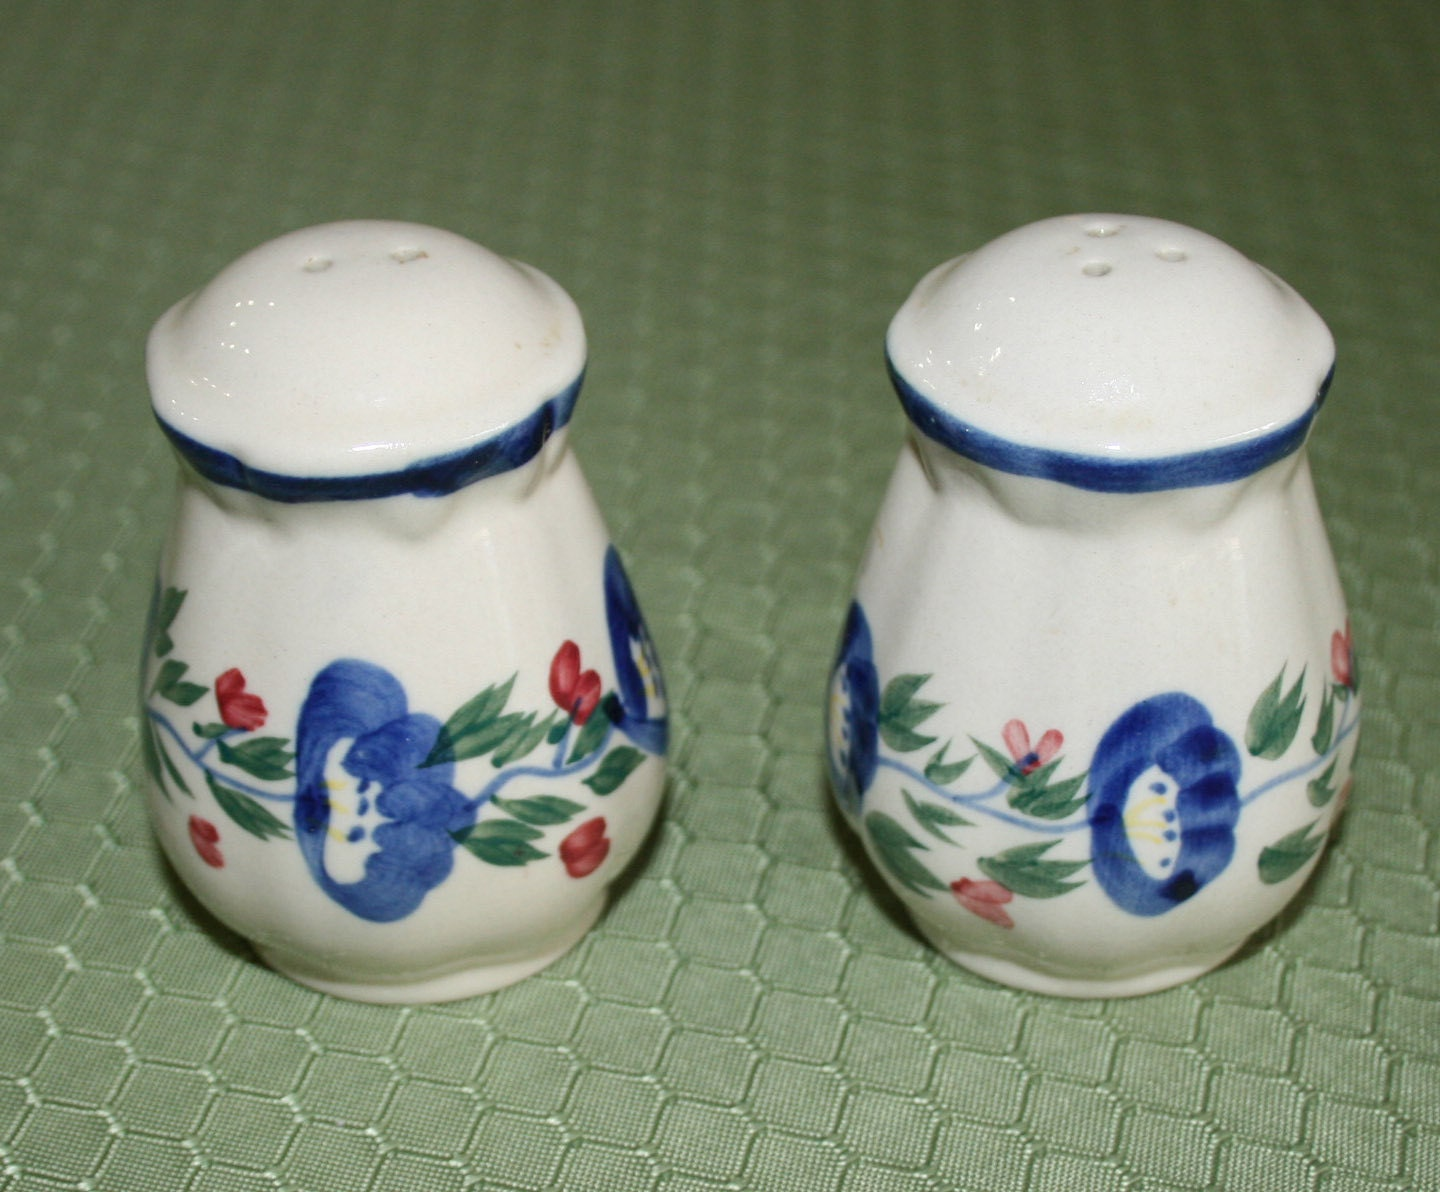 Salt And Pepper Shakers By Design Pac Inc